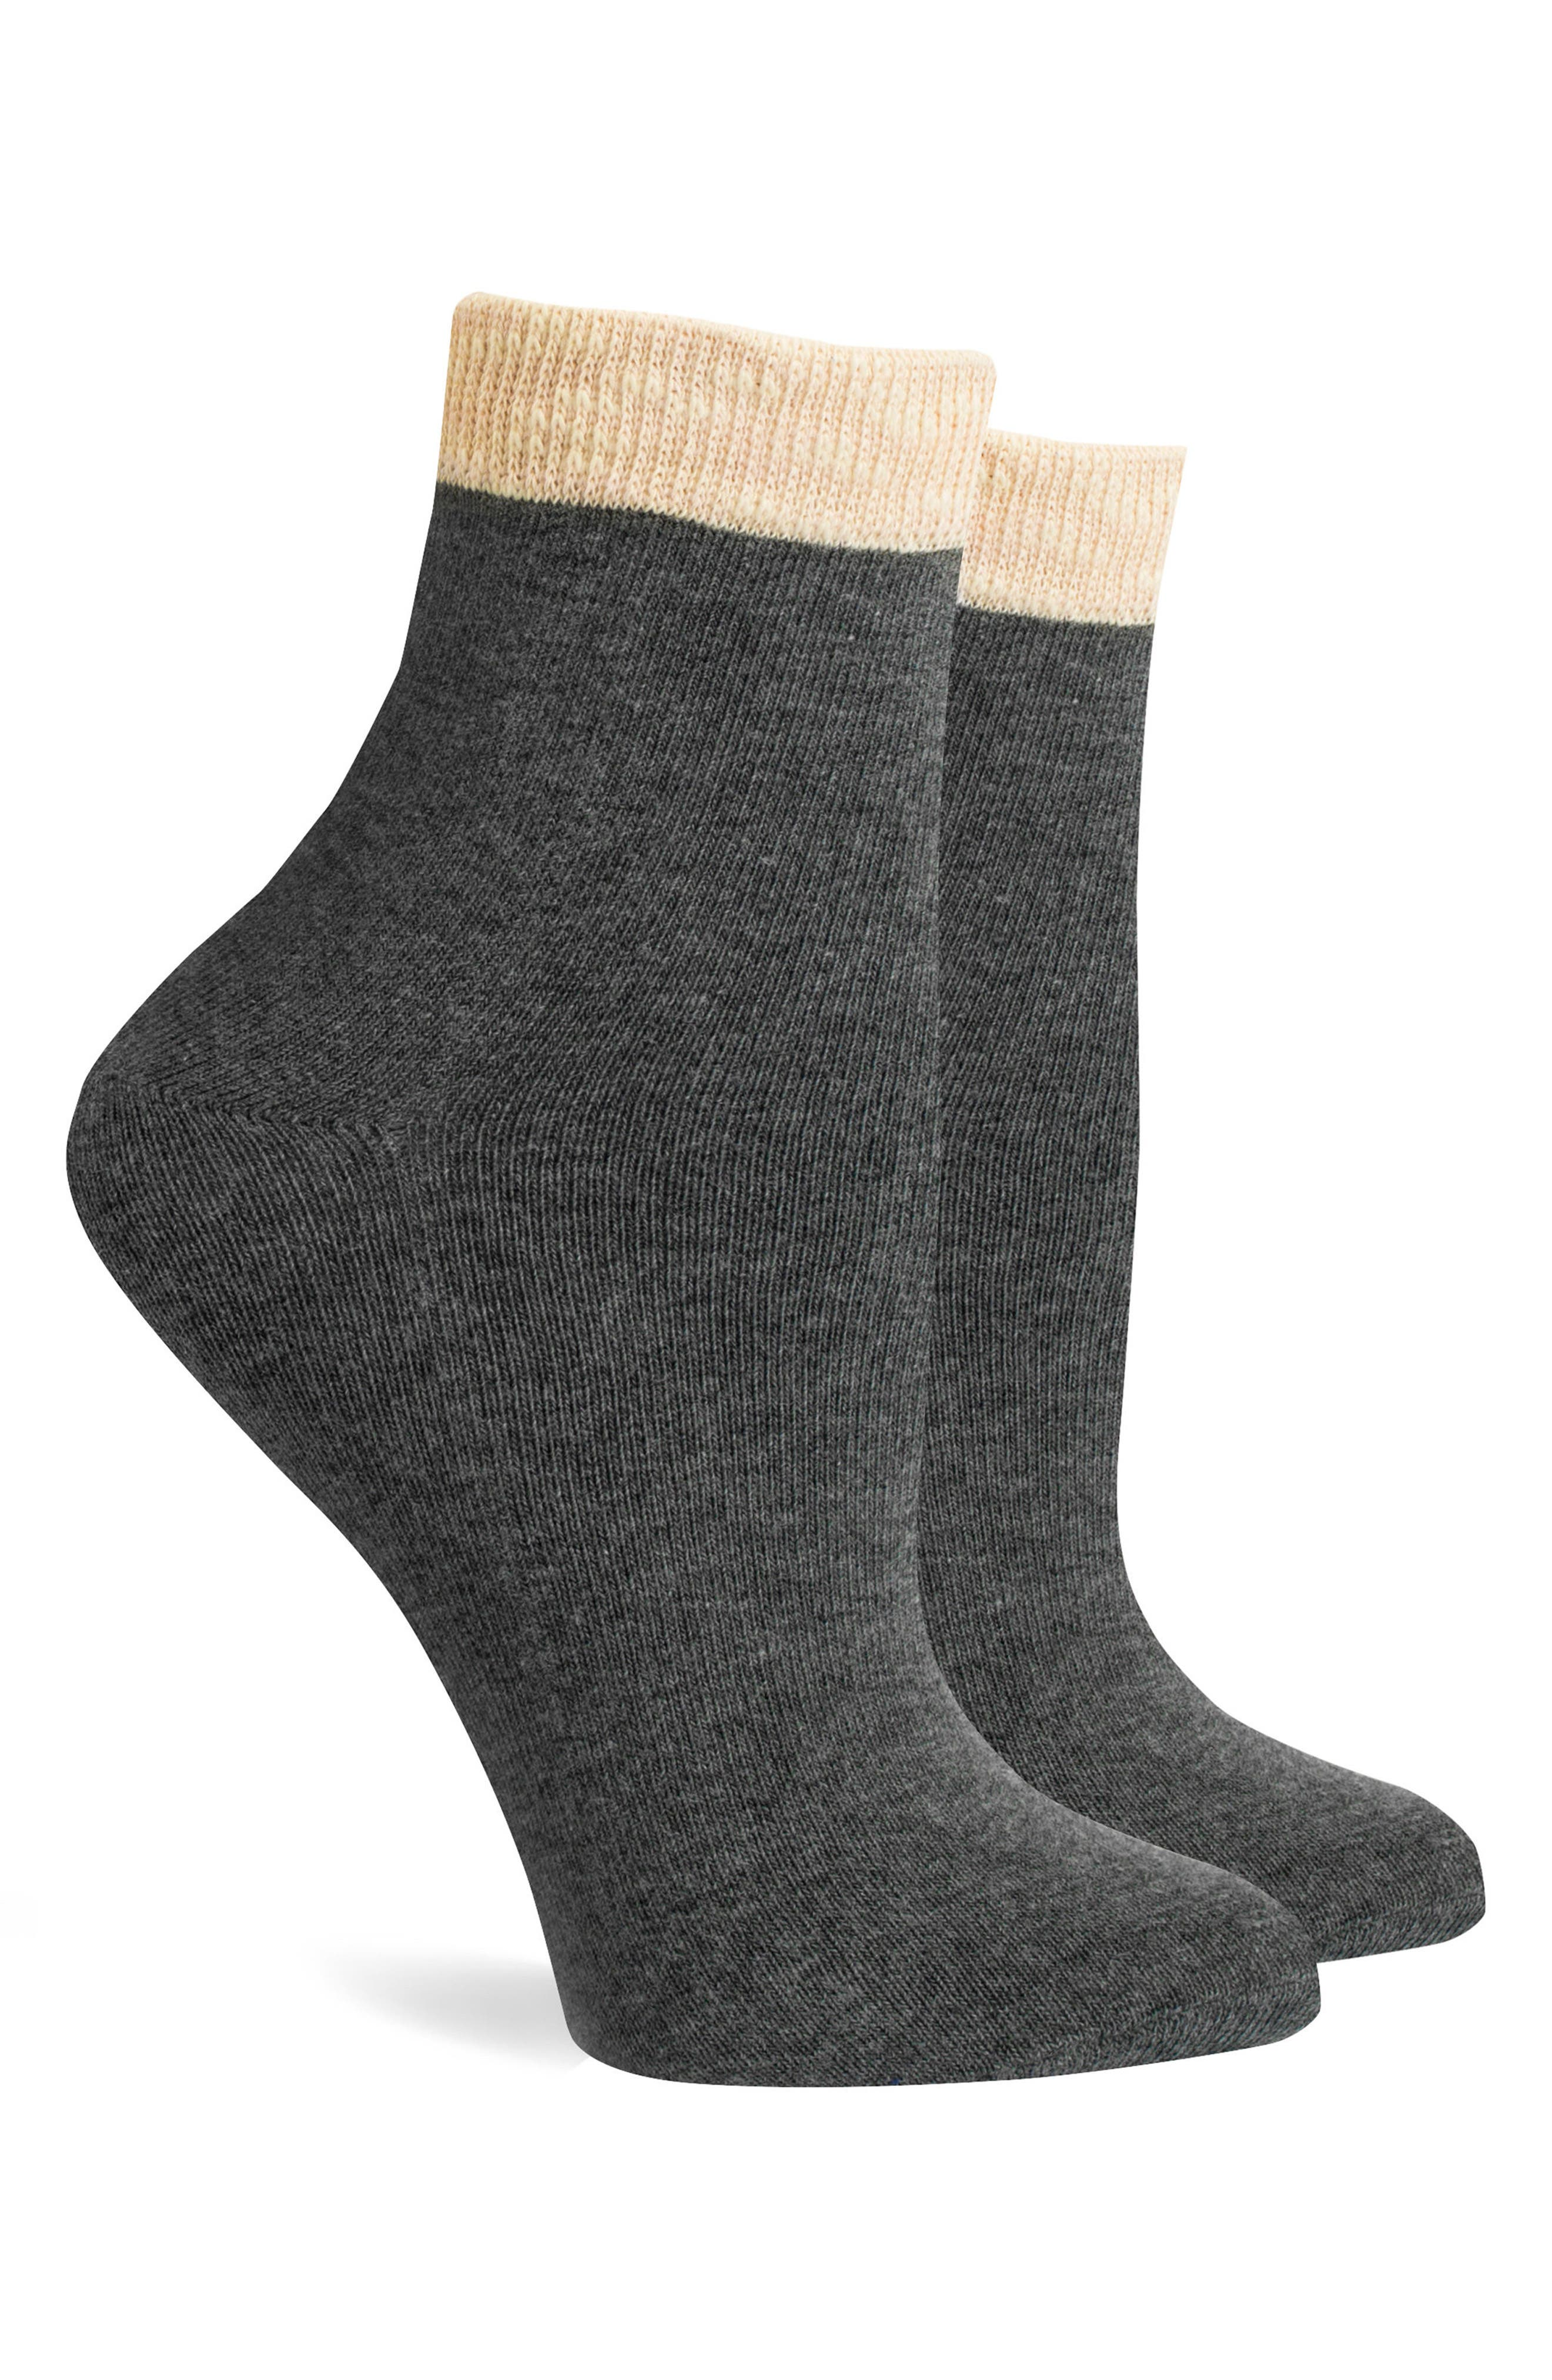 Ivy Ankle Socks,                             Alternate thumbnail 2, color,                             Charcoal